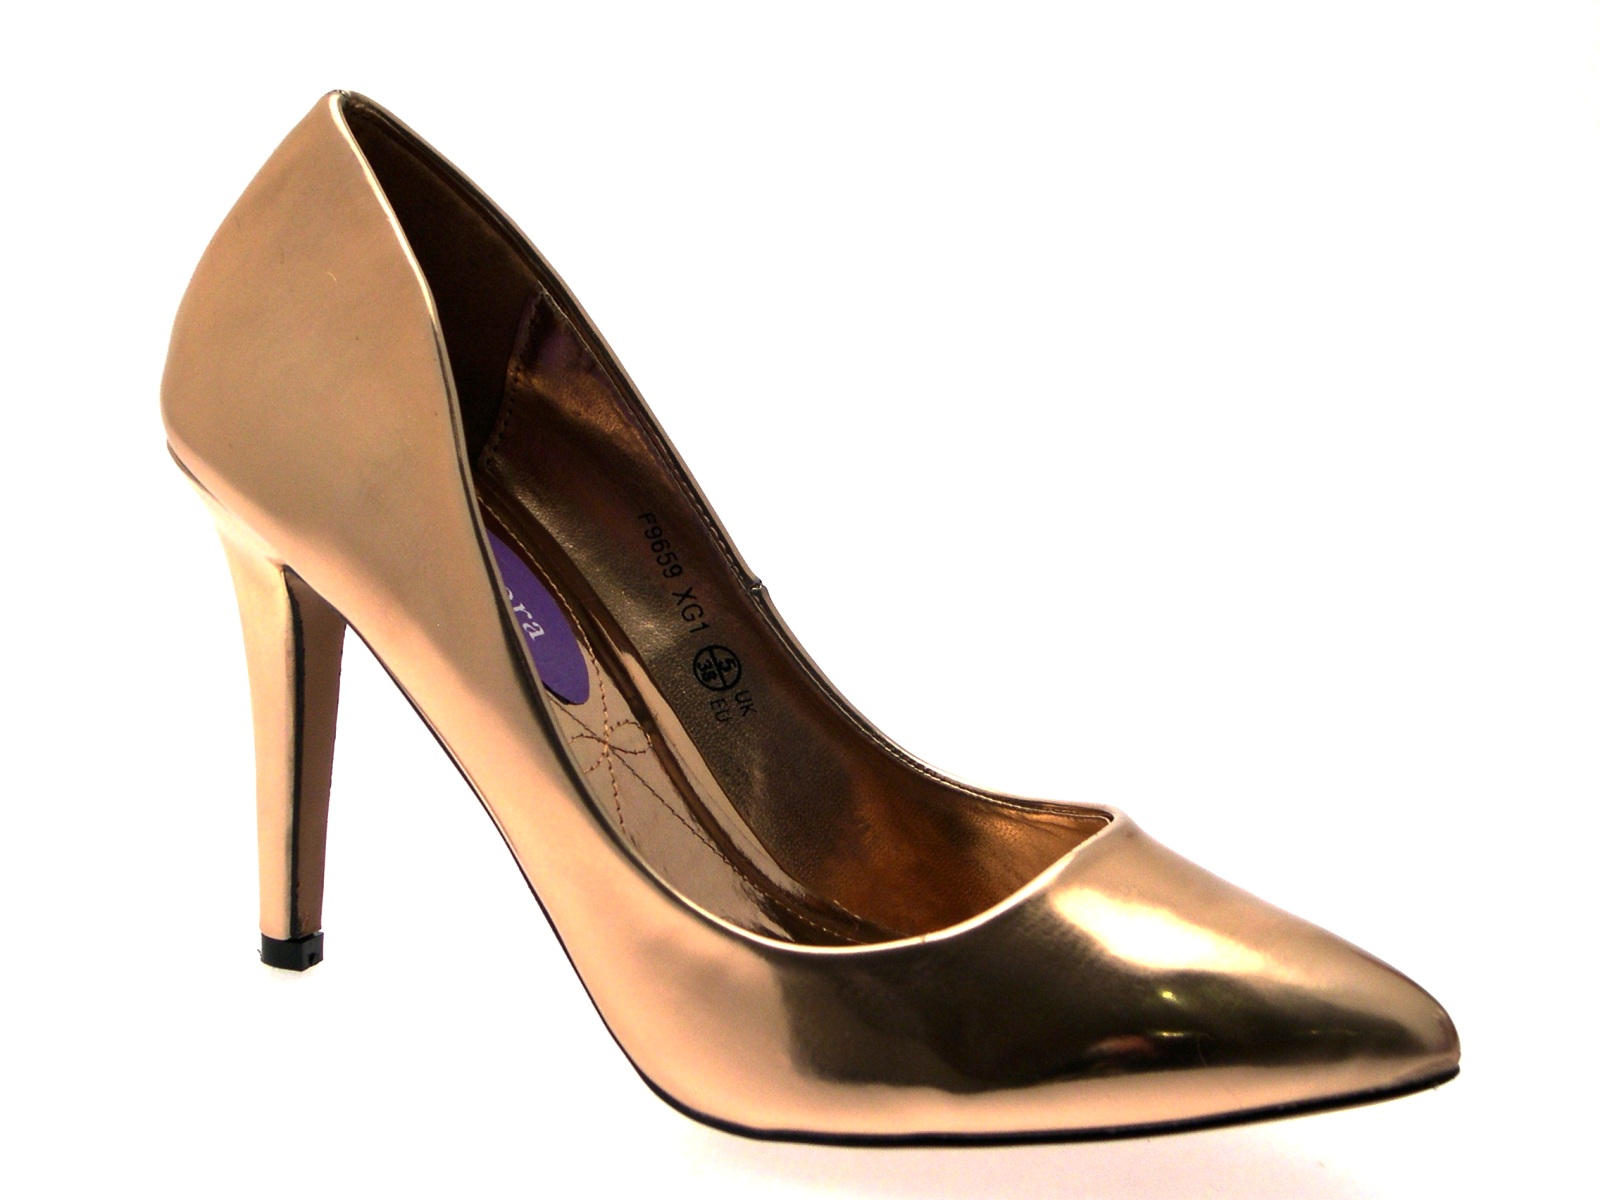 Womens-Metallic-Pointed-Toe-Court-Stiletto-High-Heels-Ladies-Work-Office-Shoes thumbnail 16